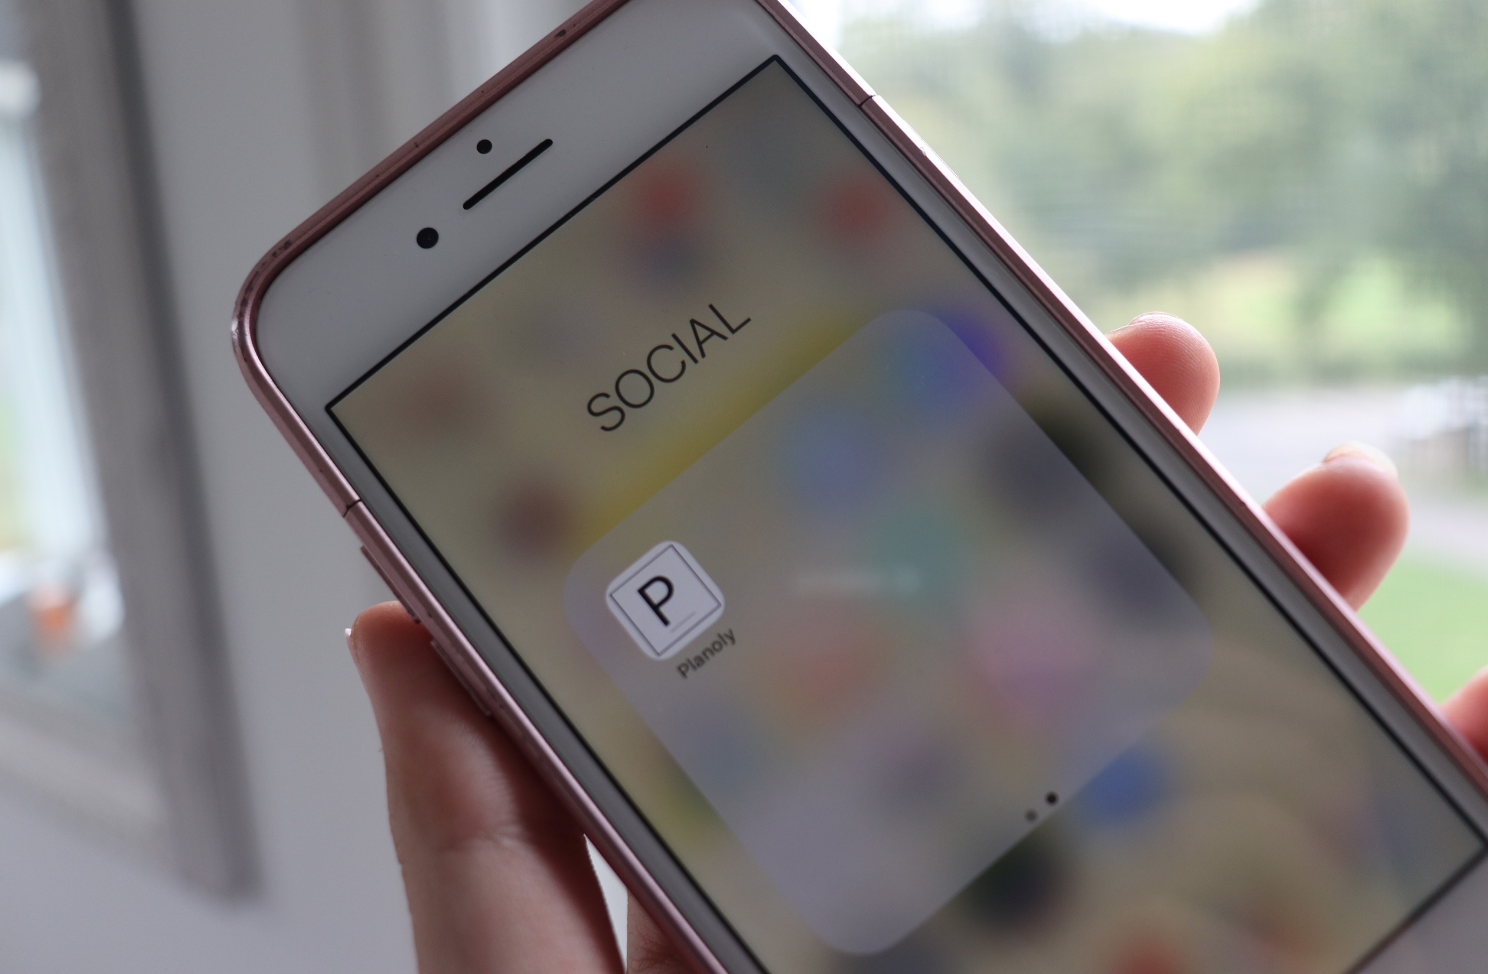 Planoly app feeds creativity and organization to Instagram users